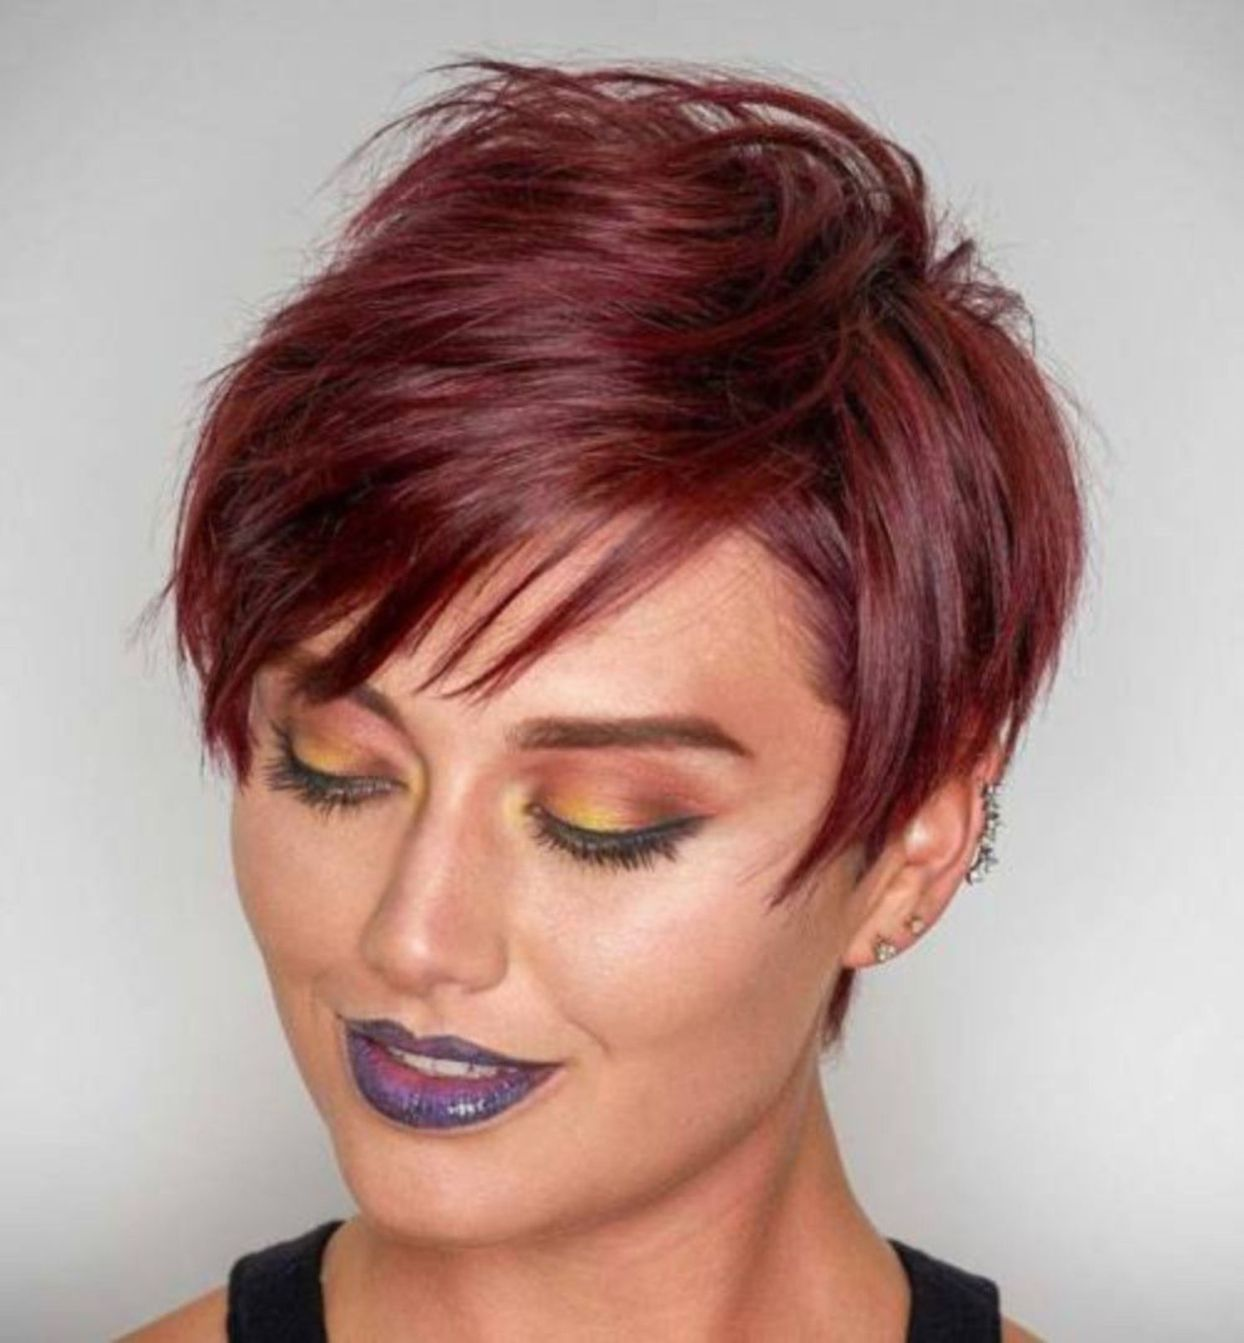 short shaggy spiky edgy pixie cuts and hairstyles beauty